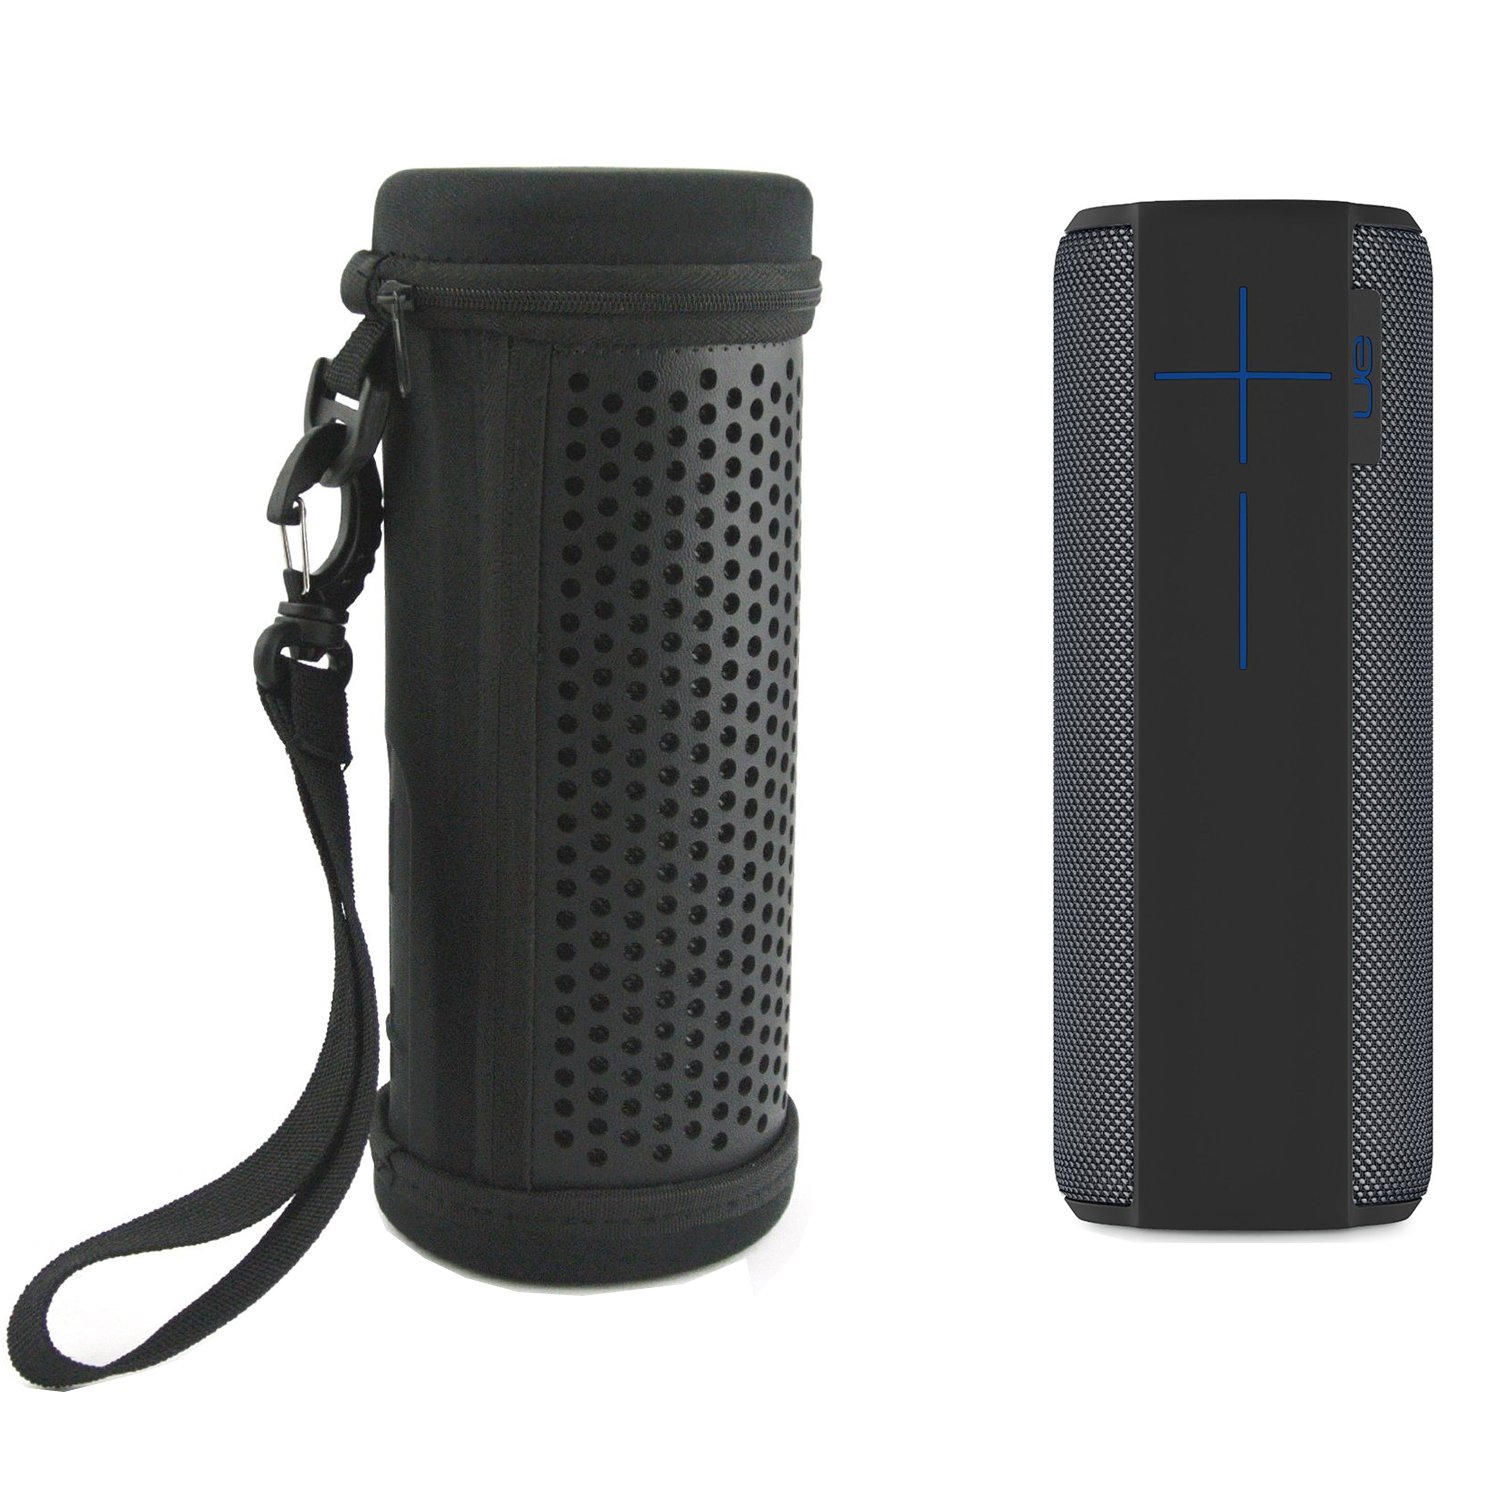 Zaracle PU Leather Case Travel Carry Case Protect Cover Pouch Sleeve Bag For UE Megaboom Bluetooth Speaker